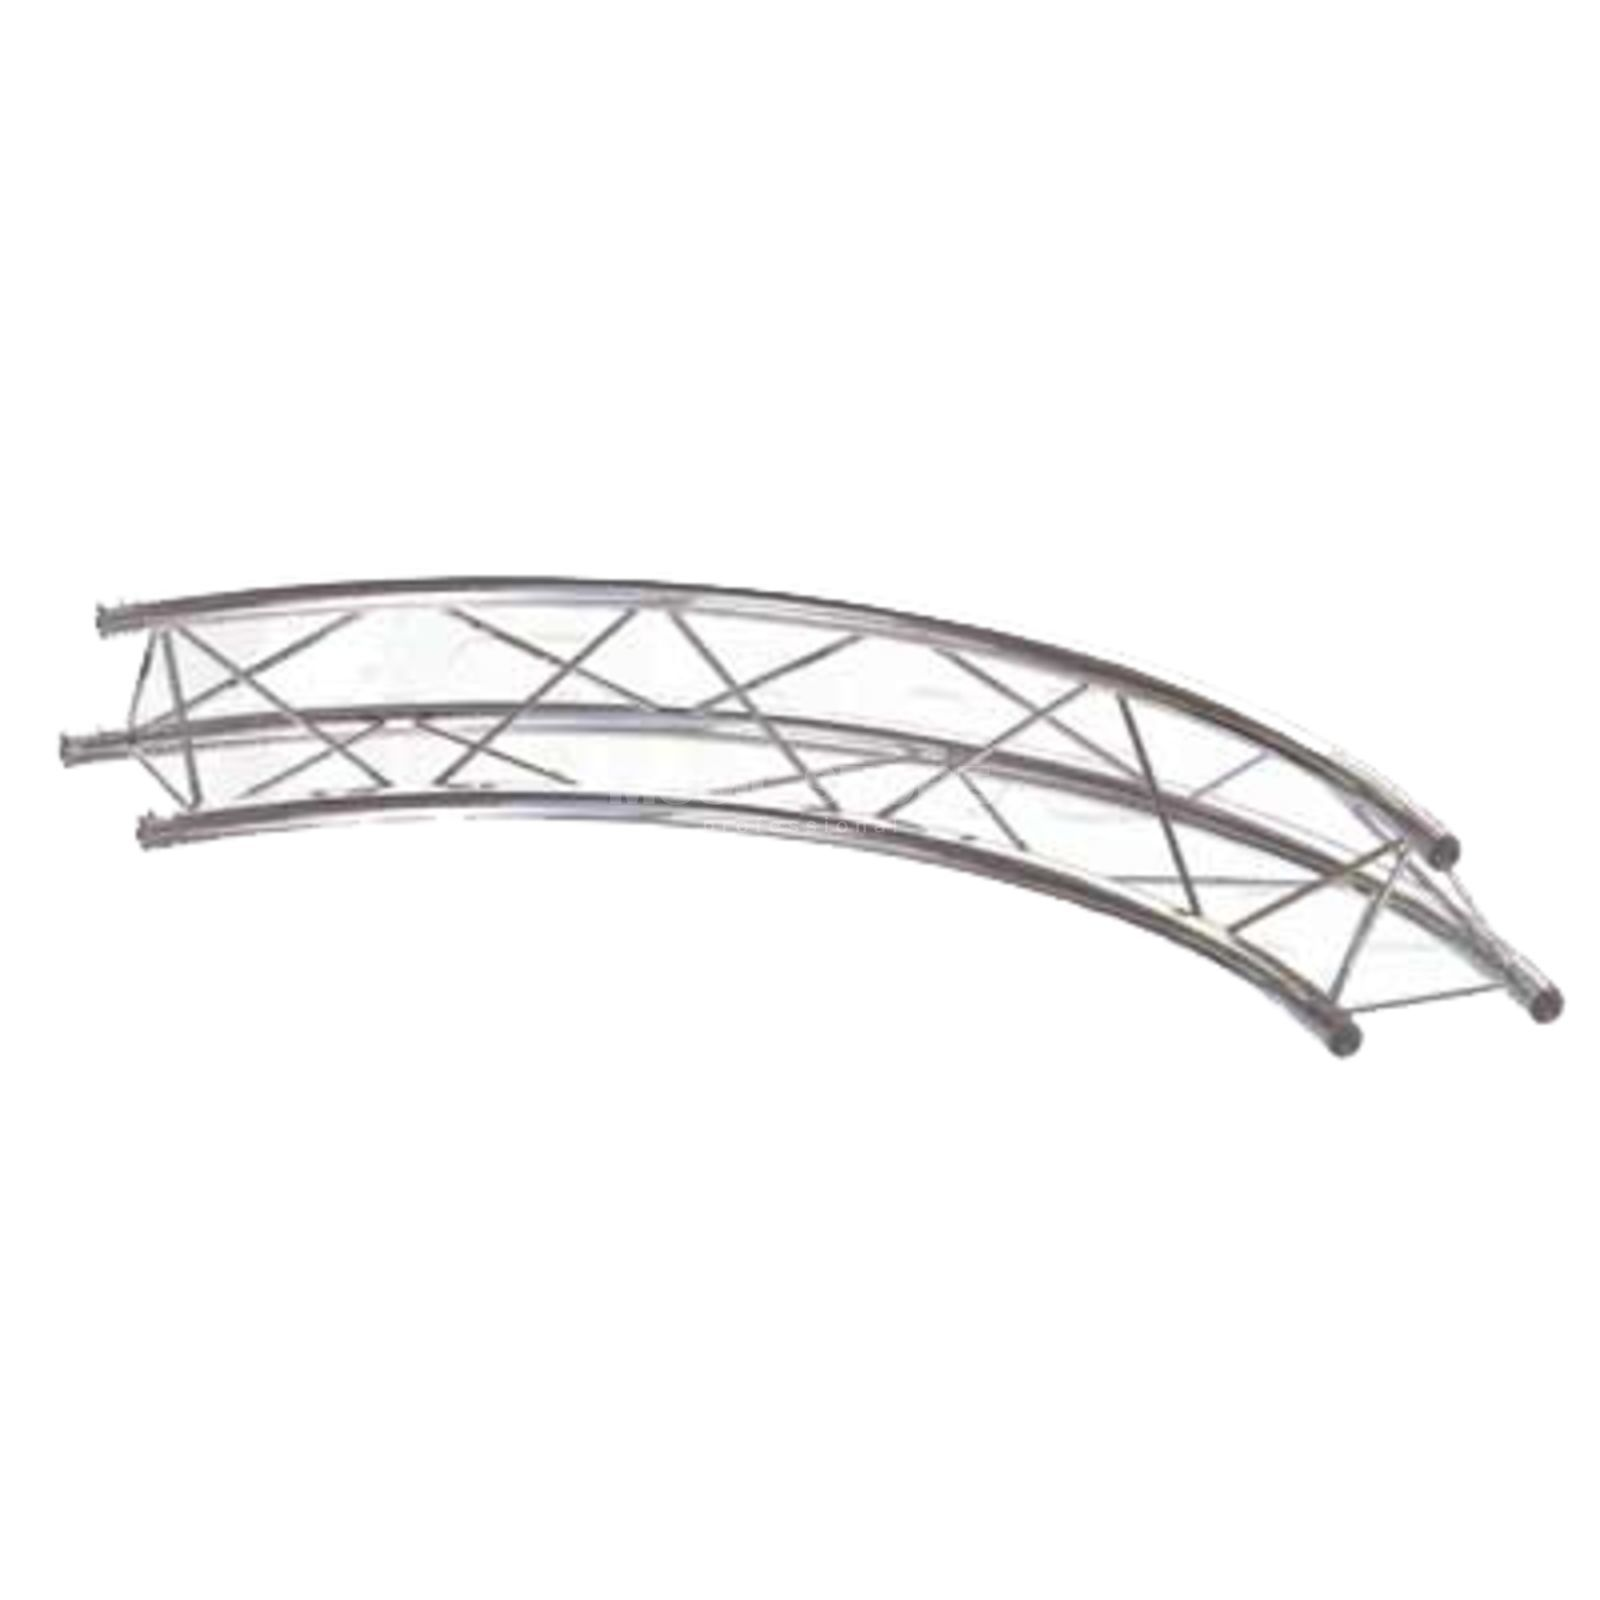 Global Truss F23 Decotruss Circular 60° 7m Produktbillede